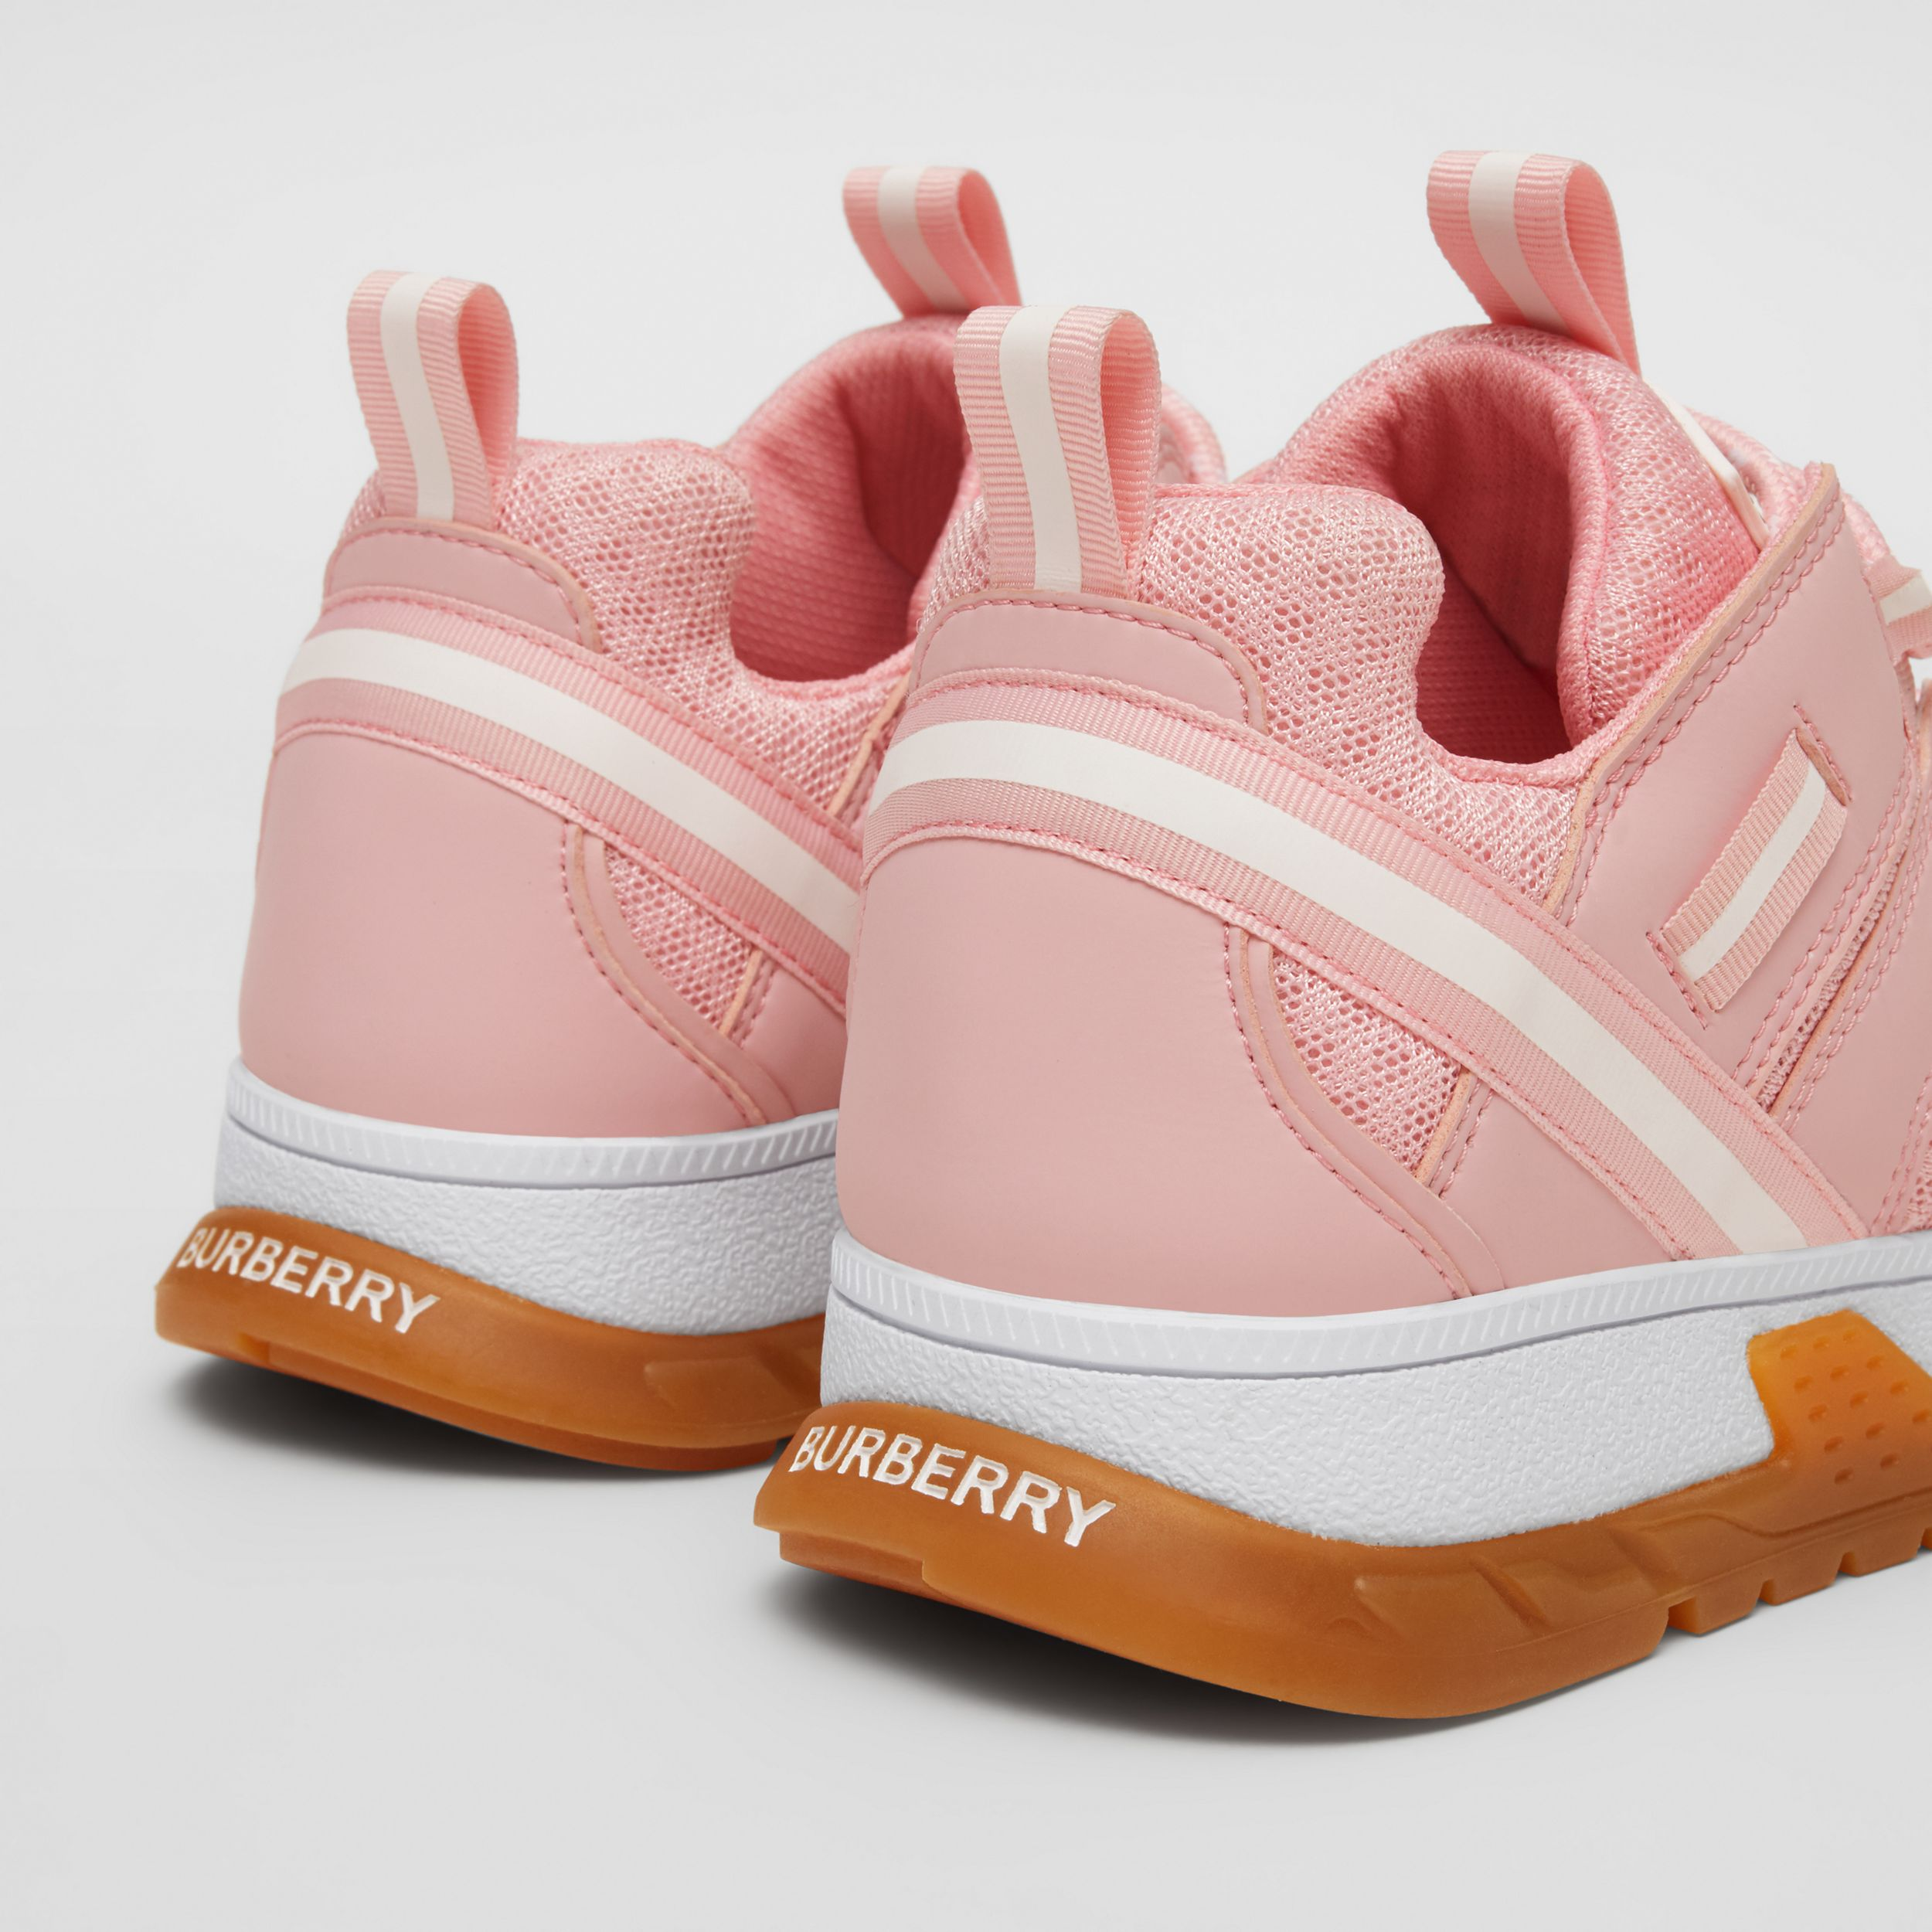 Nylon and Mesh Union Sneakers in Candy Pink - Children | Burberry - 2